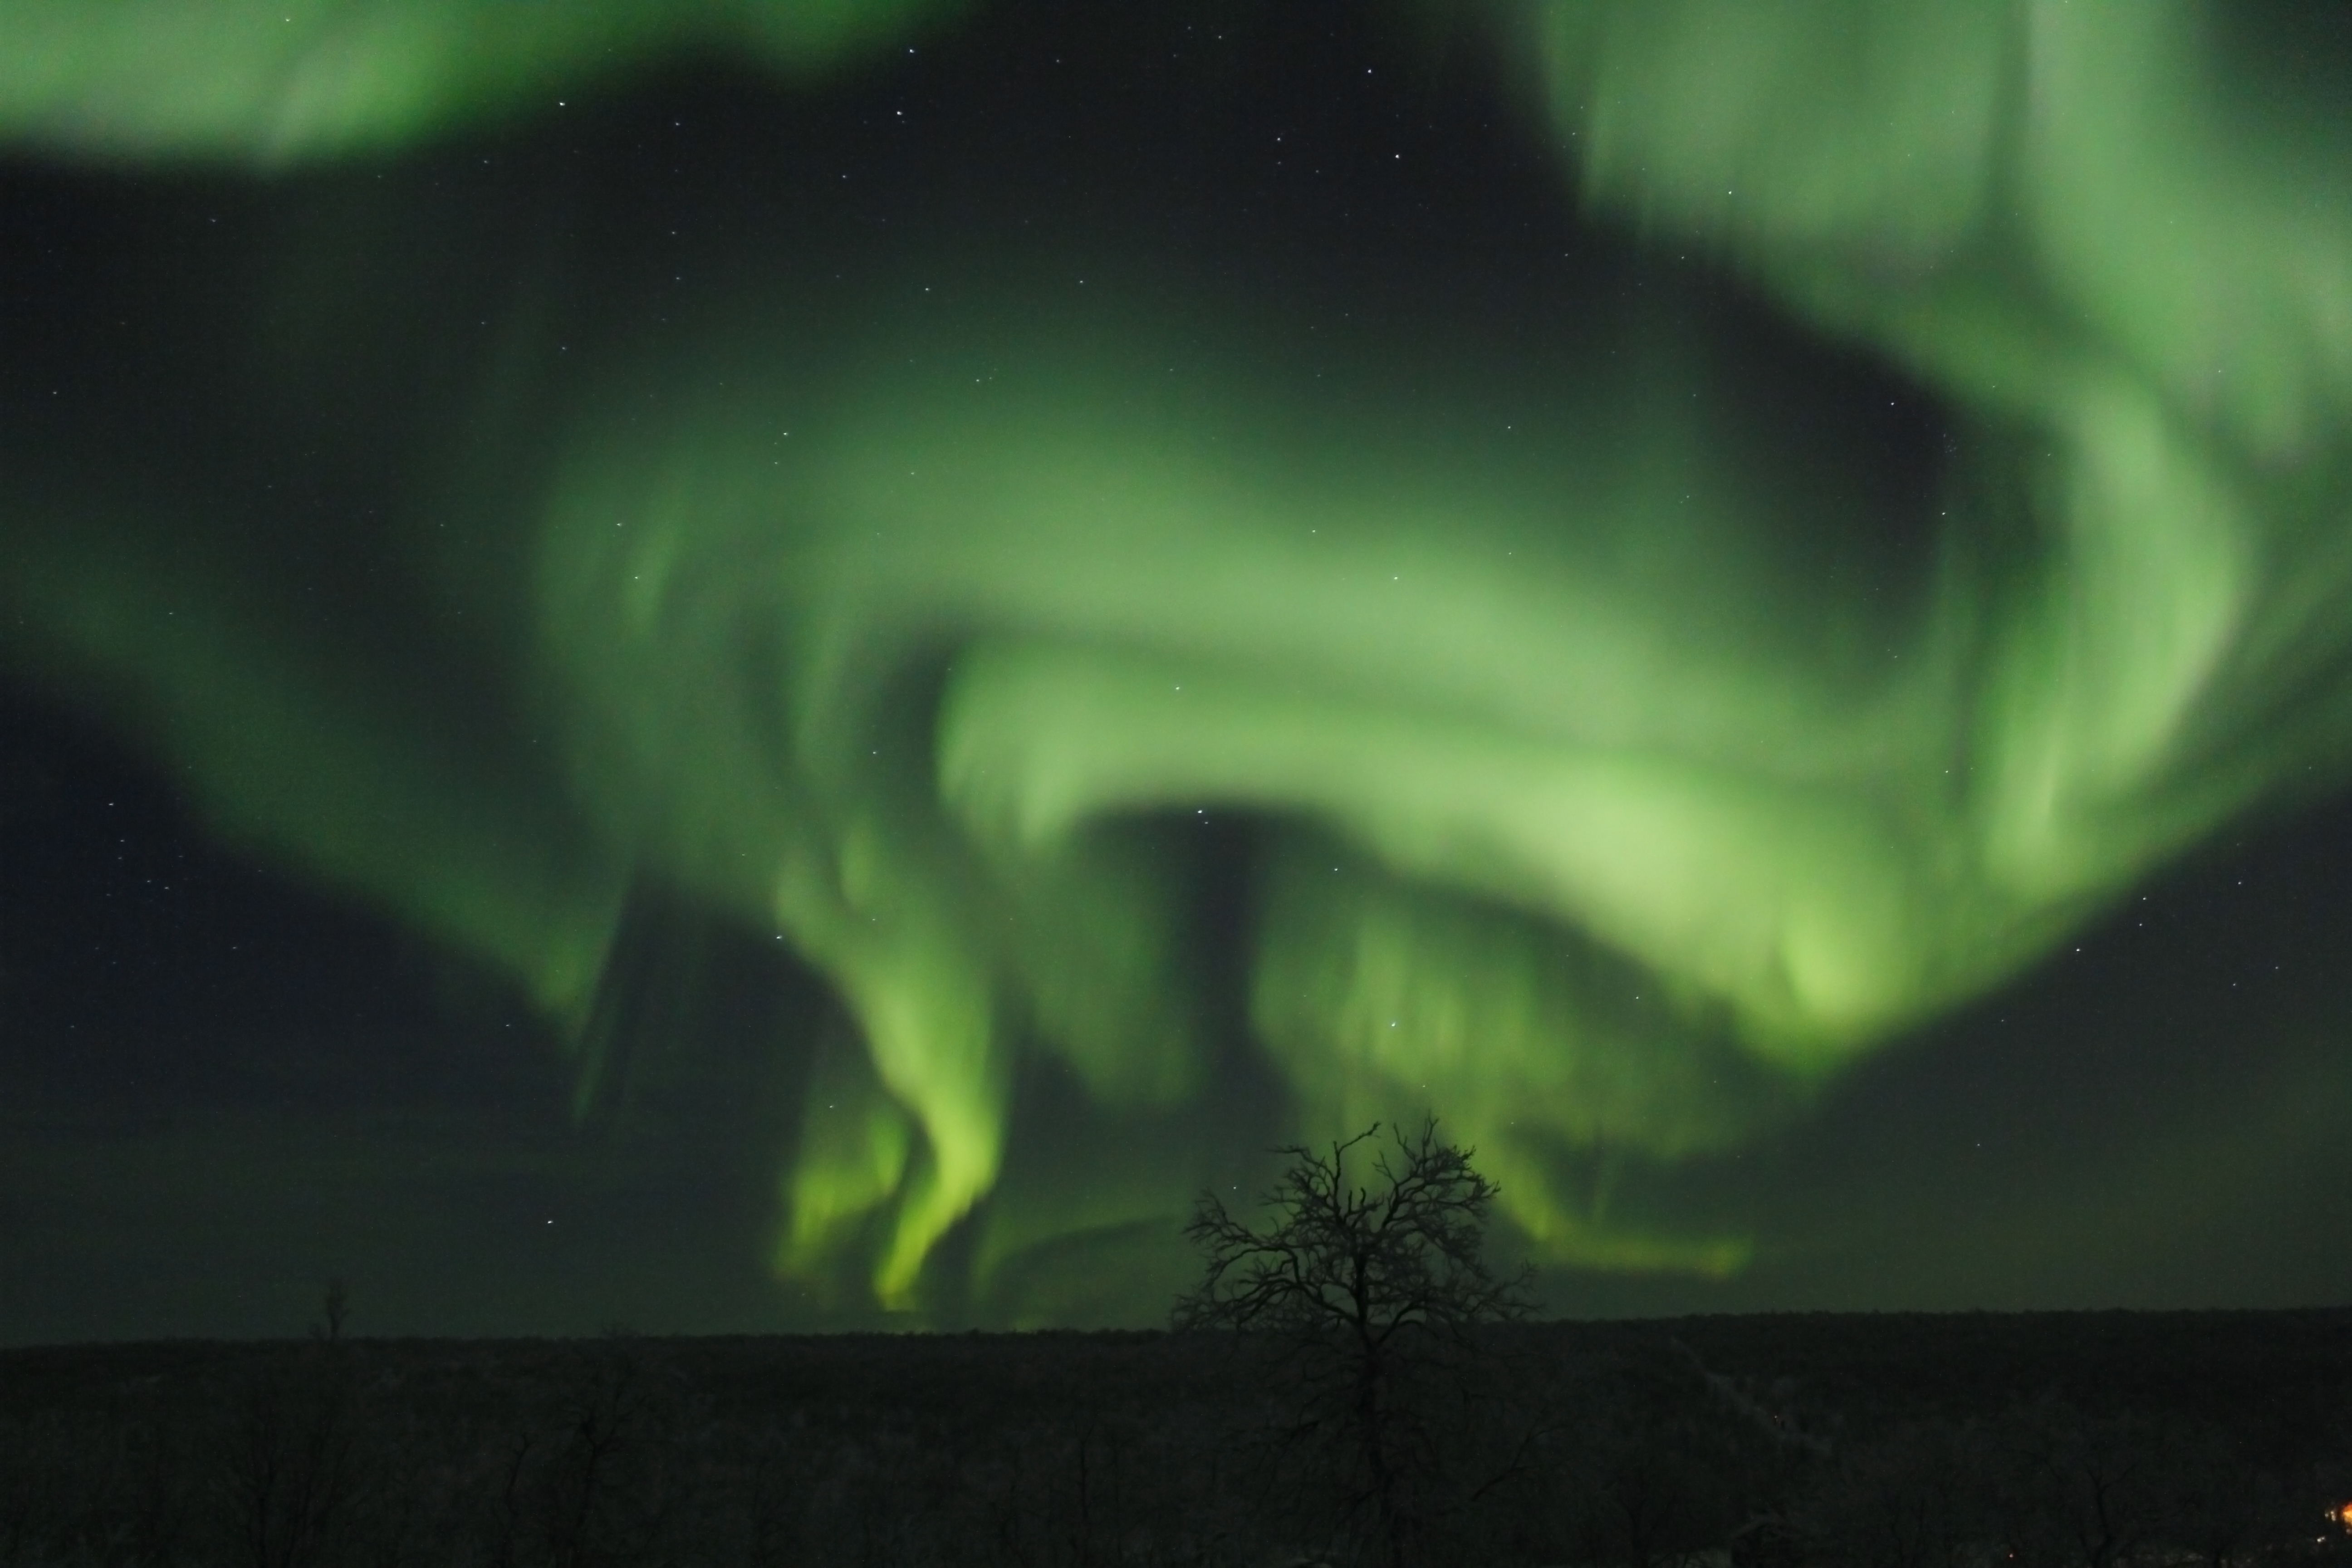 The Aurora often takes on a large swirling structure that spins and turns overhead.